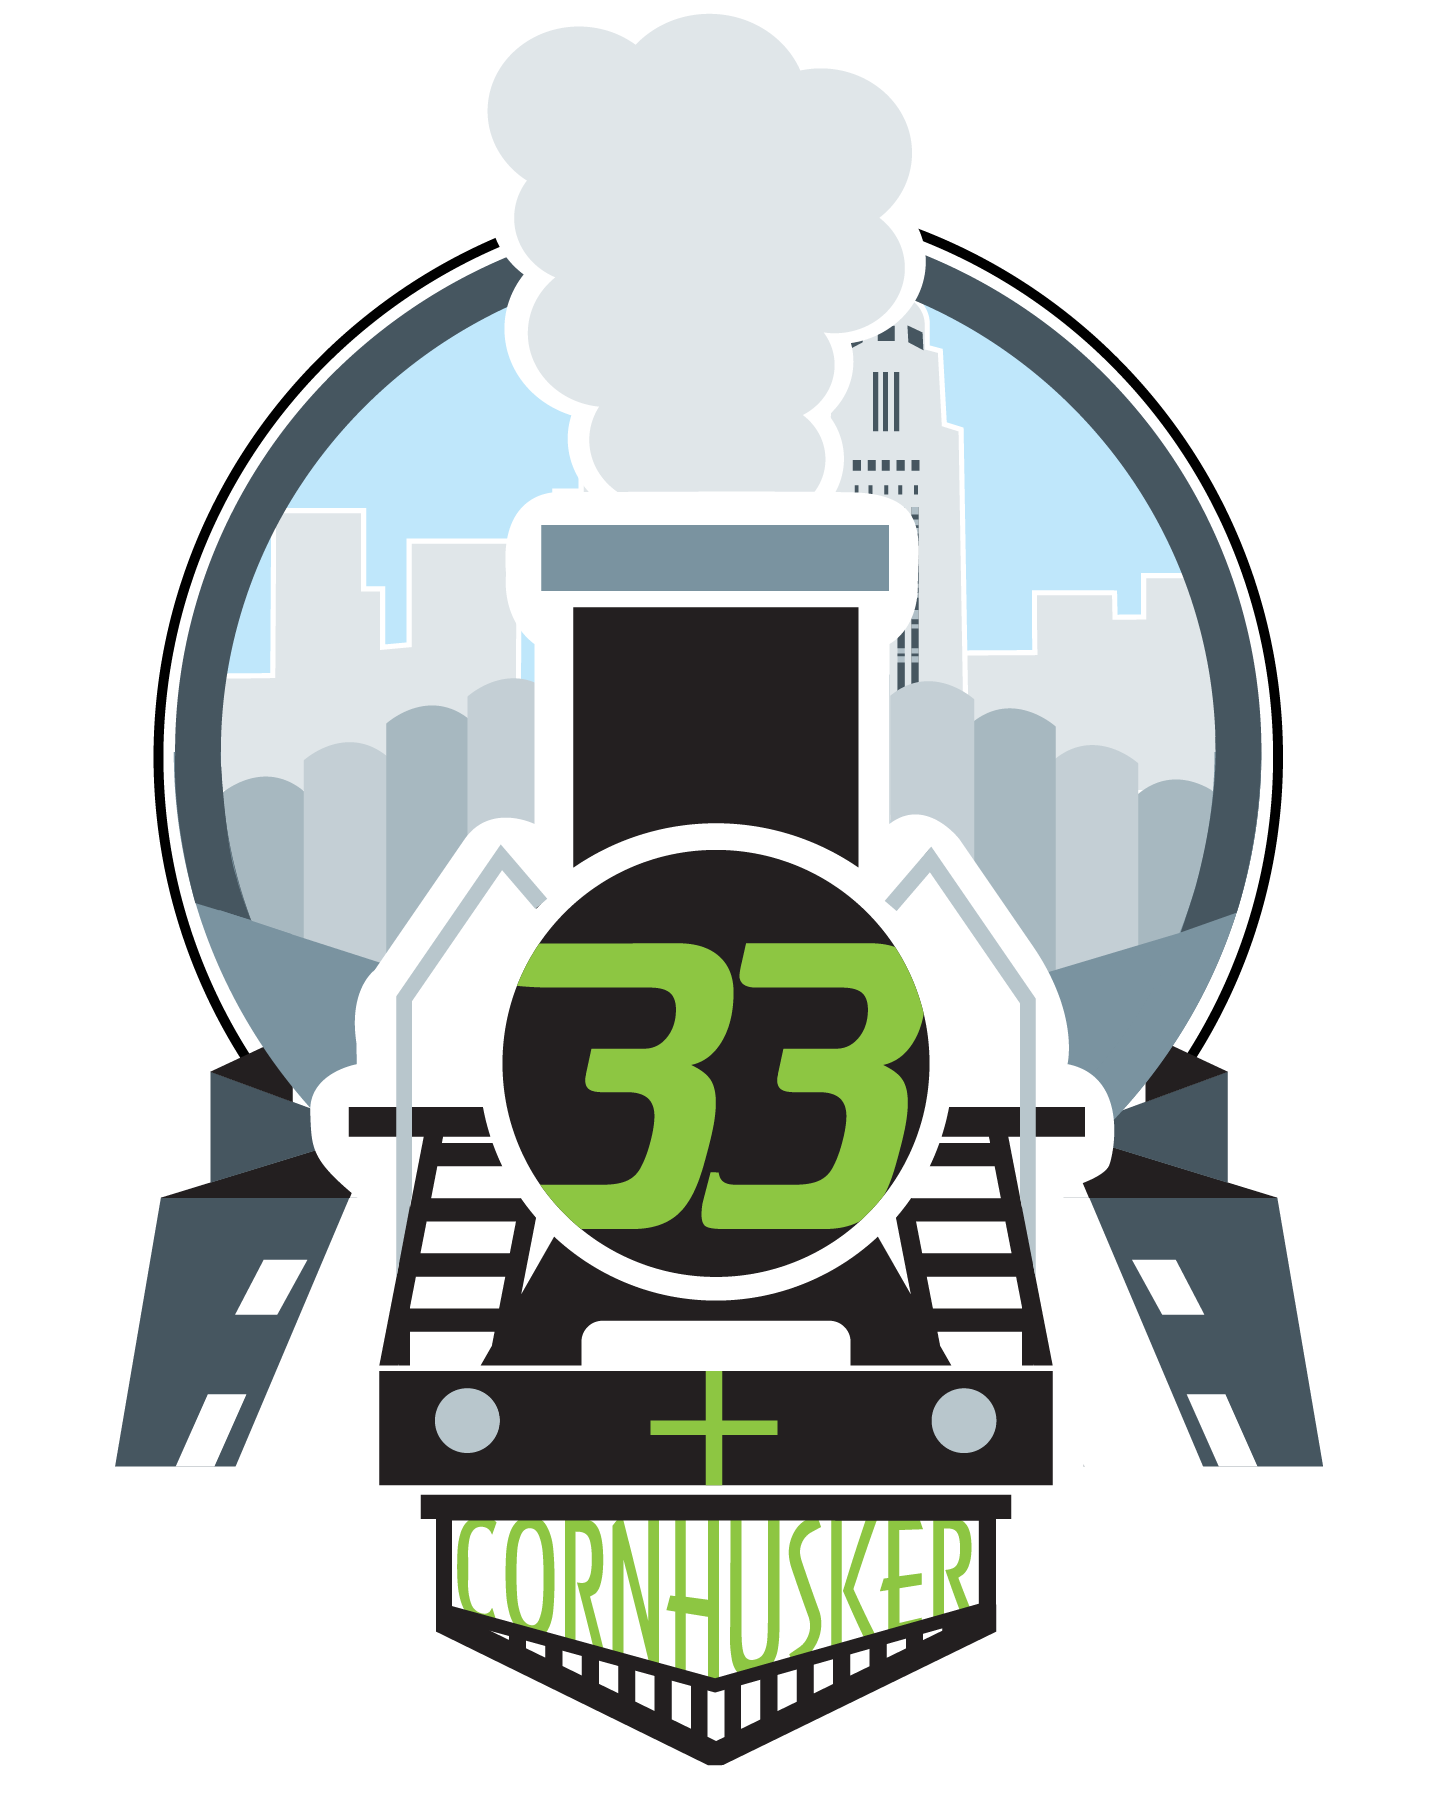 33rd & Cornhusker Logo_updated-02.png